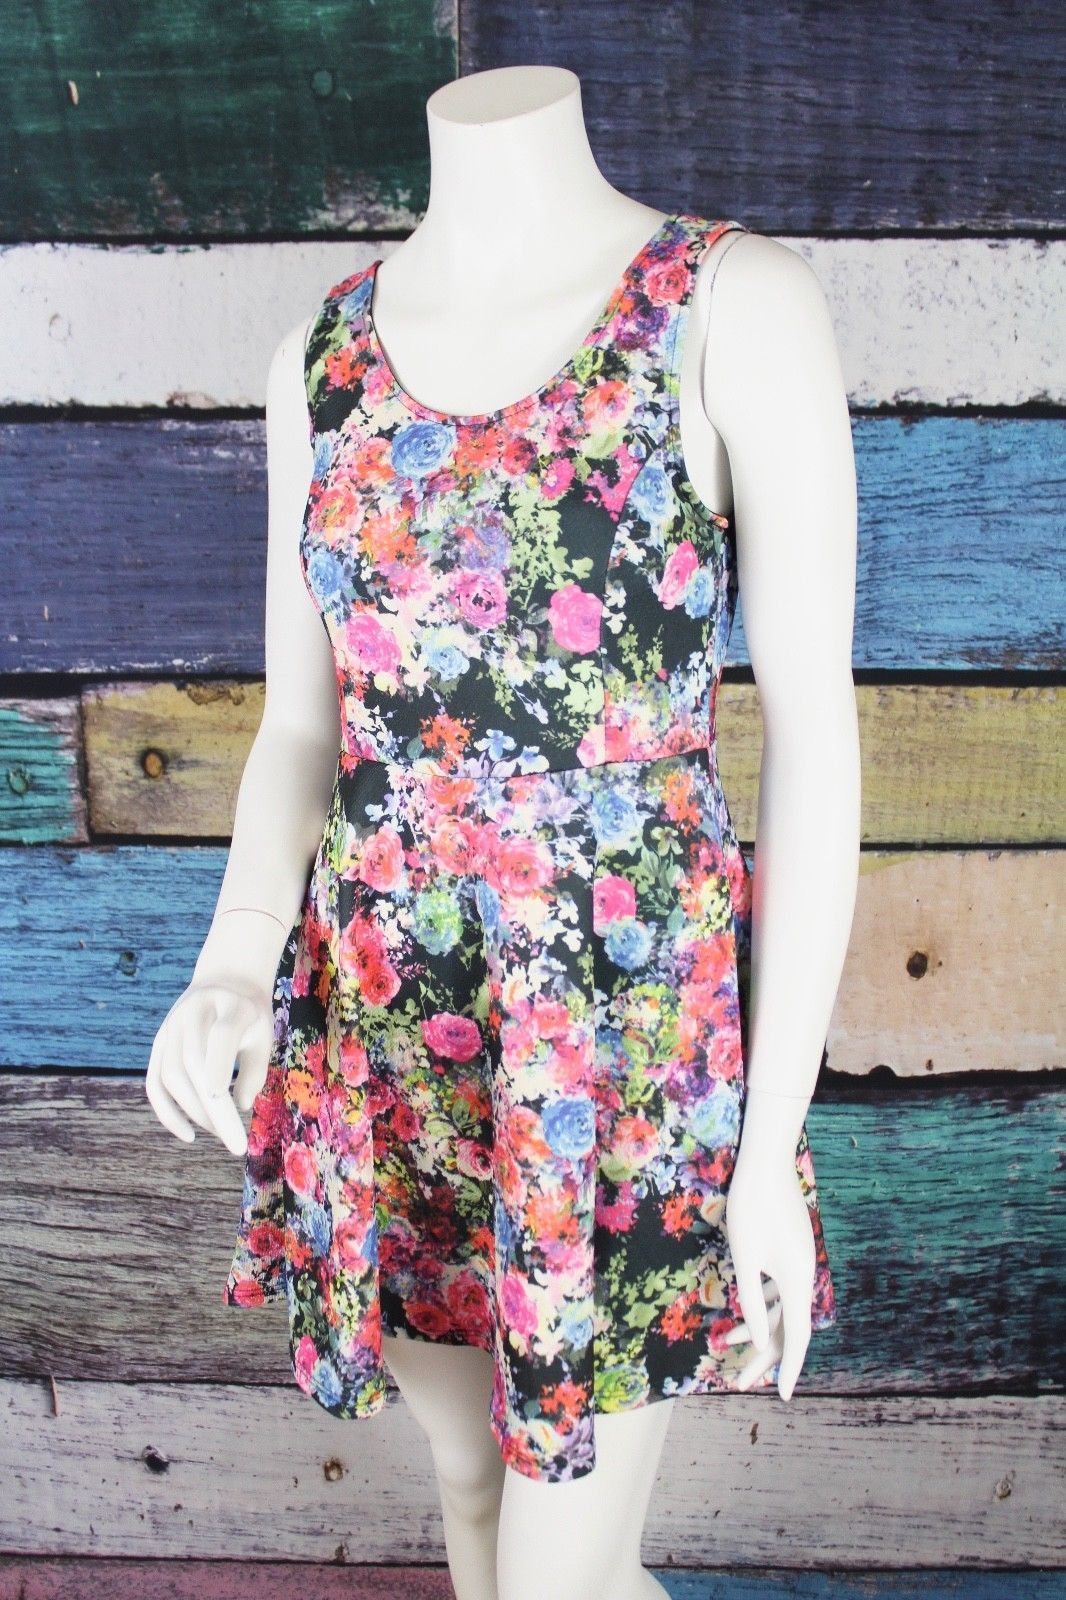 Lush Medium M Black Pink Floral Stretch Scuba Fit & Flare Skater Dress Nordstrom